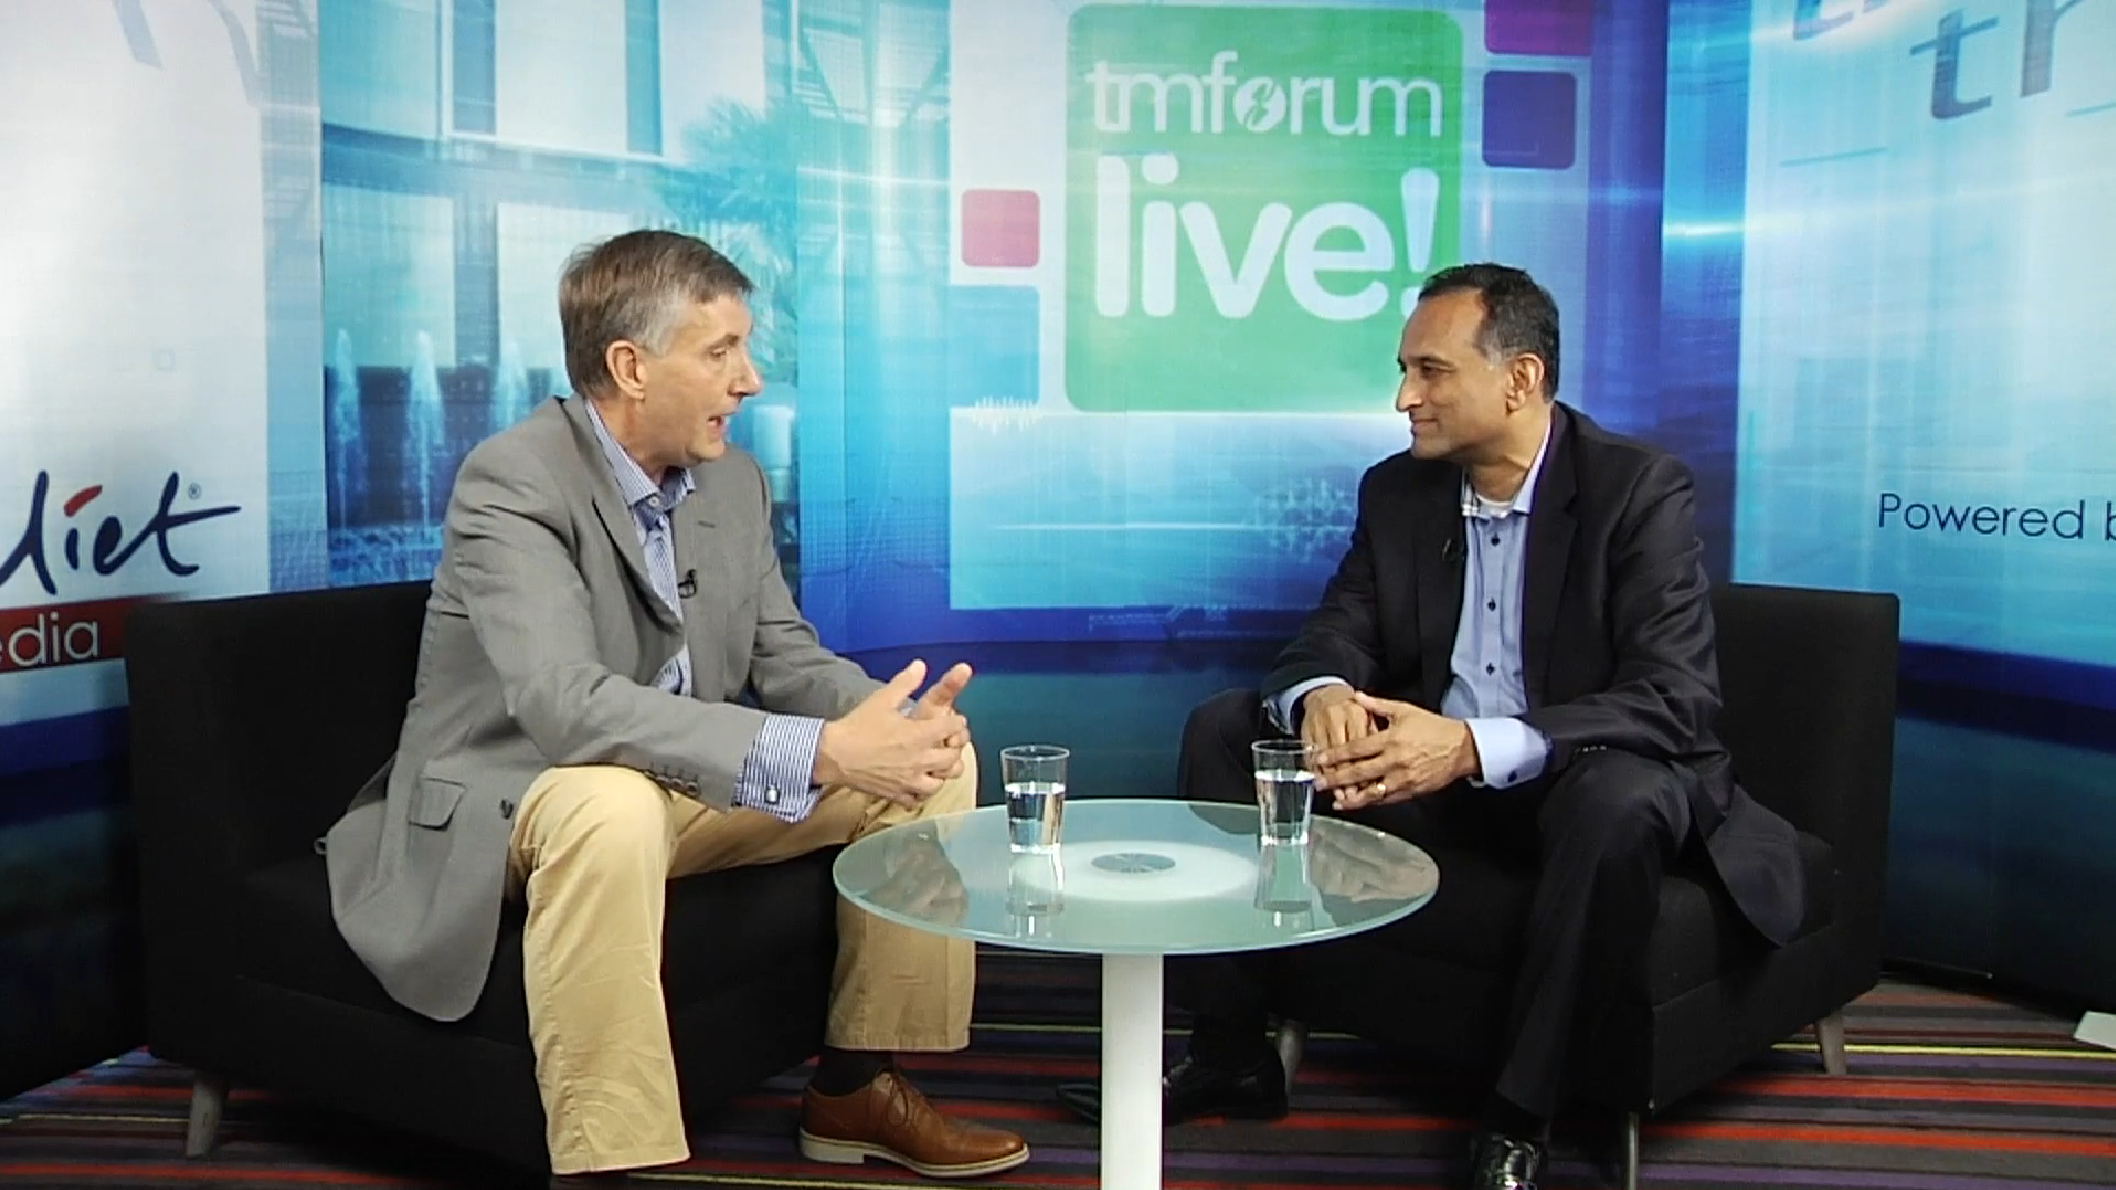 Paul Vedam, Founder and CEO, TIERONE at TM Forum Live! 2015